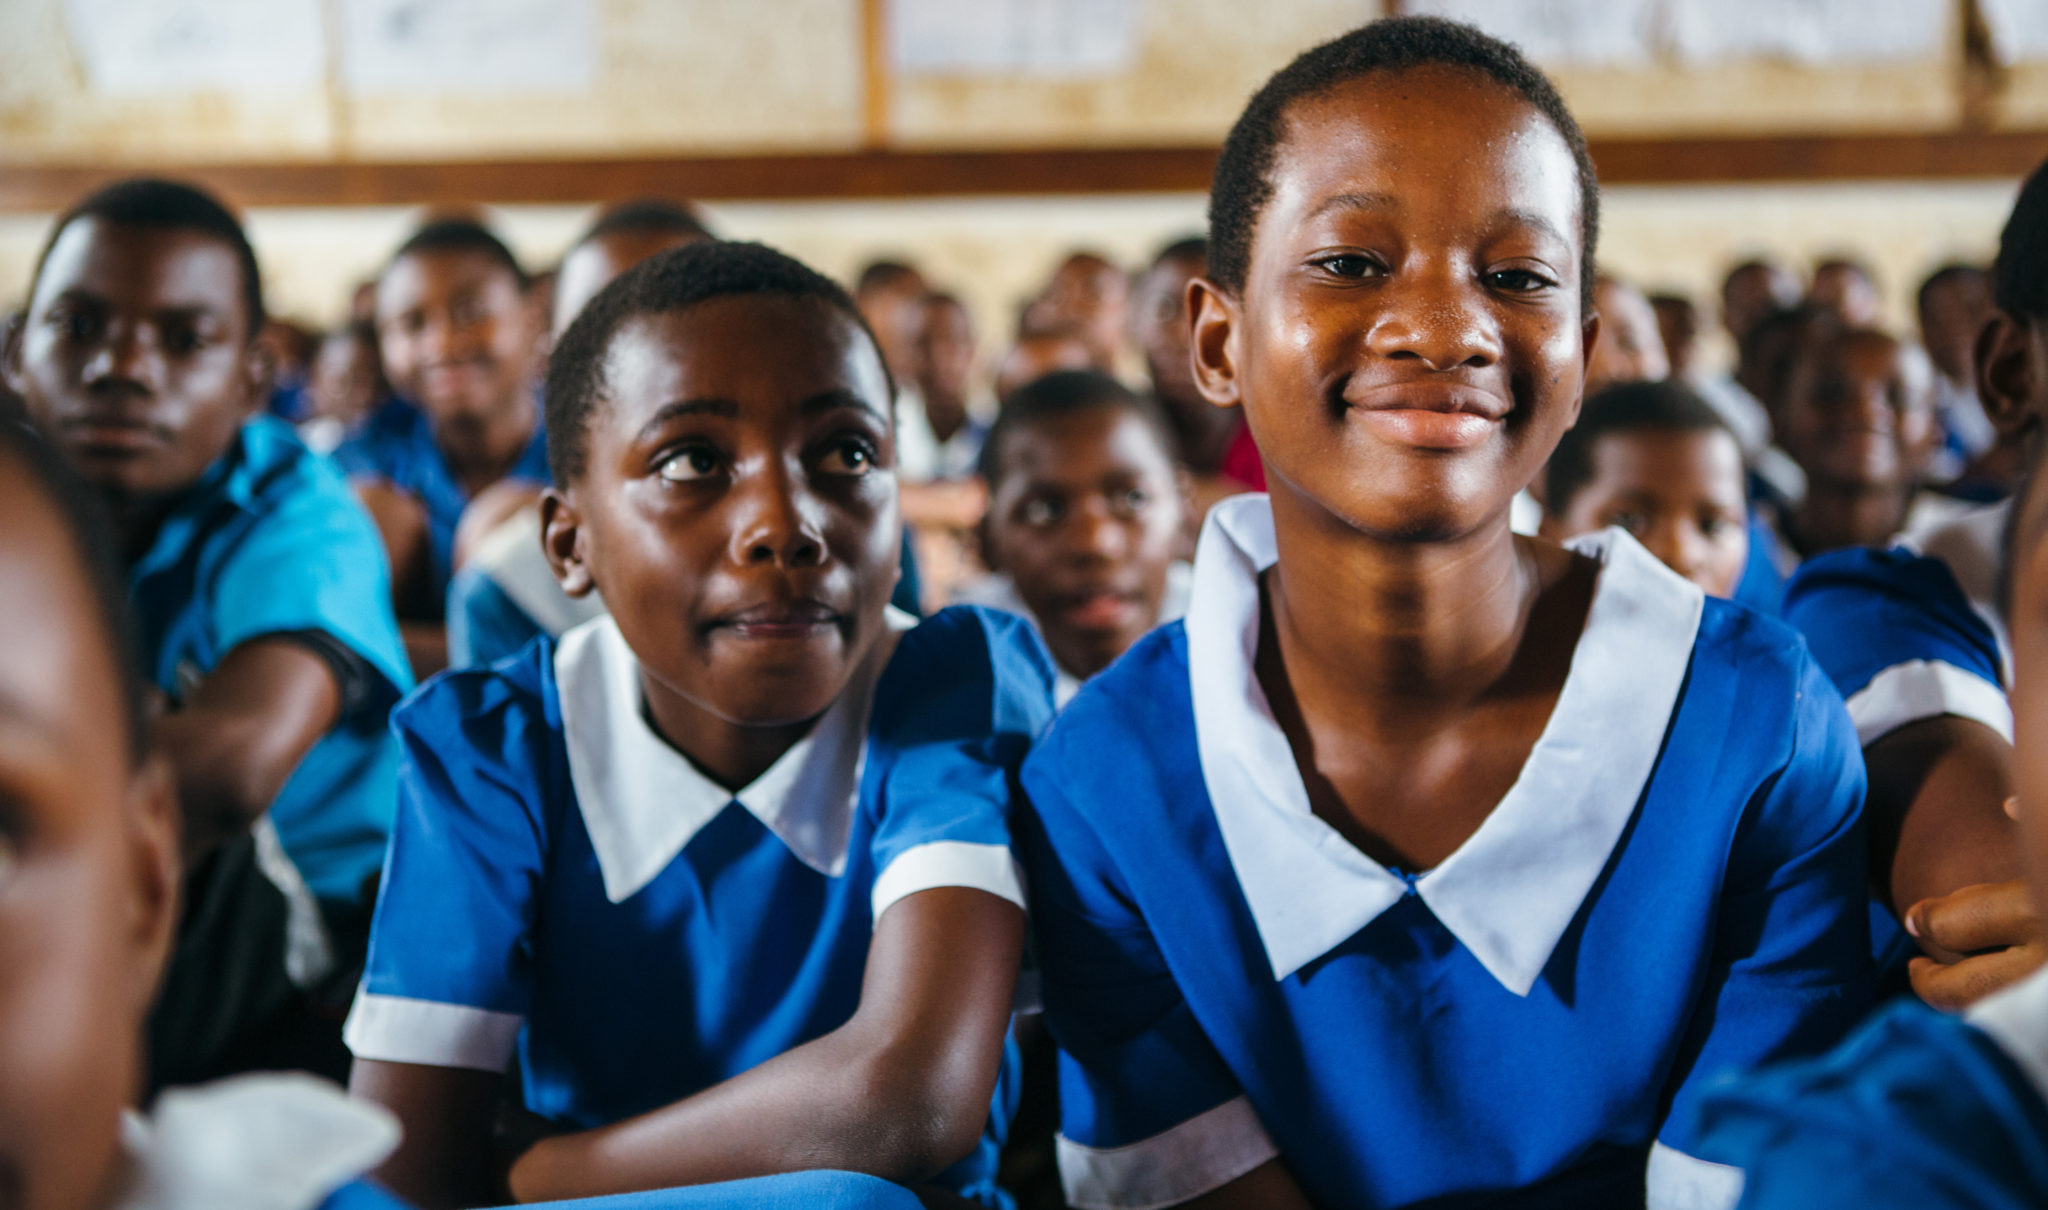 school kids smiling | This is the Impact of Good Hygiene | Water For People